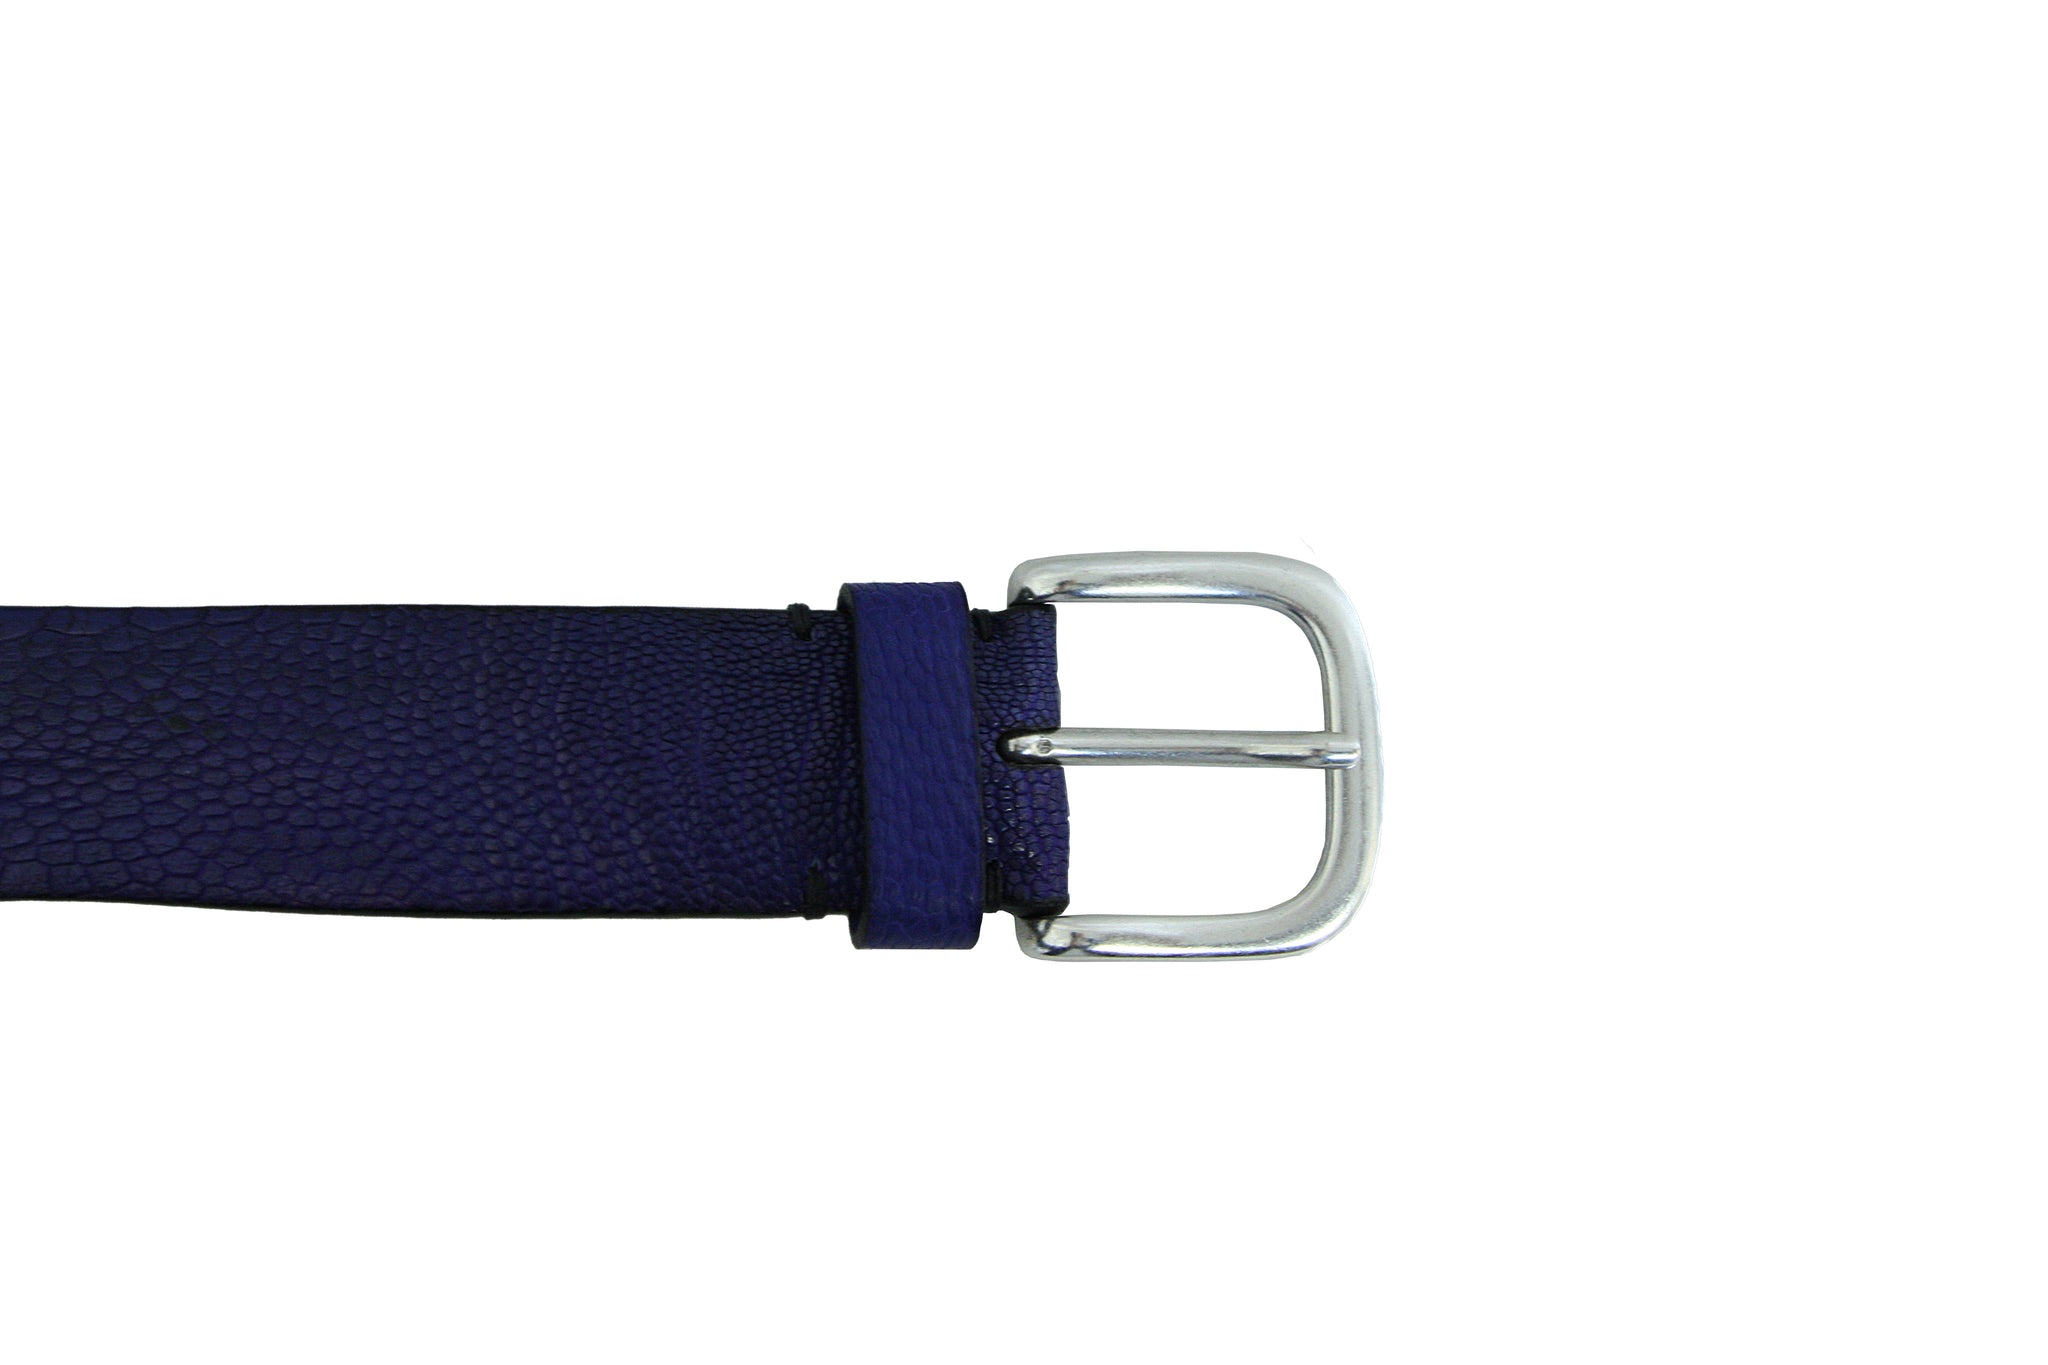 Post & Co Cobalt Blue Ostrich Belt from Italy at Halo Shoes Portland